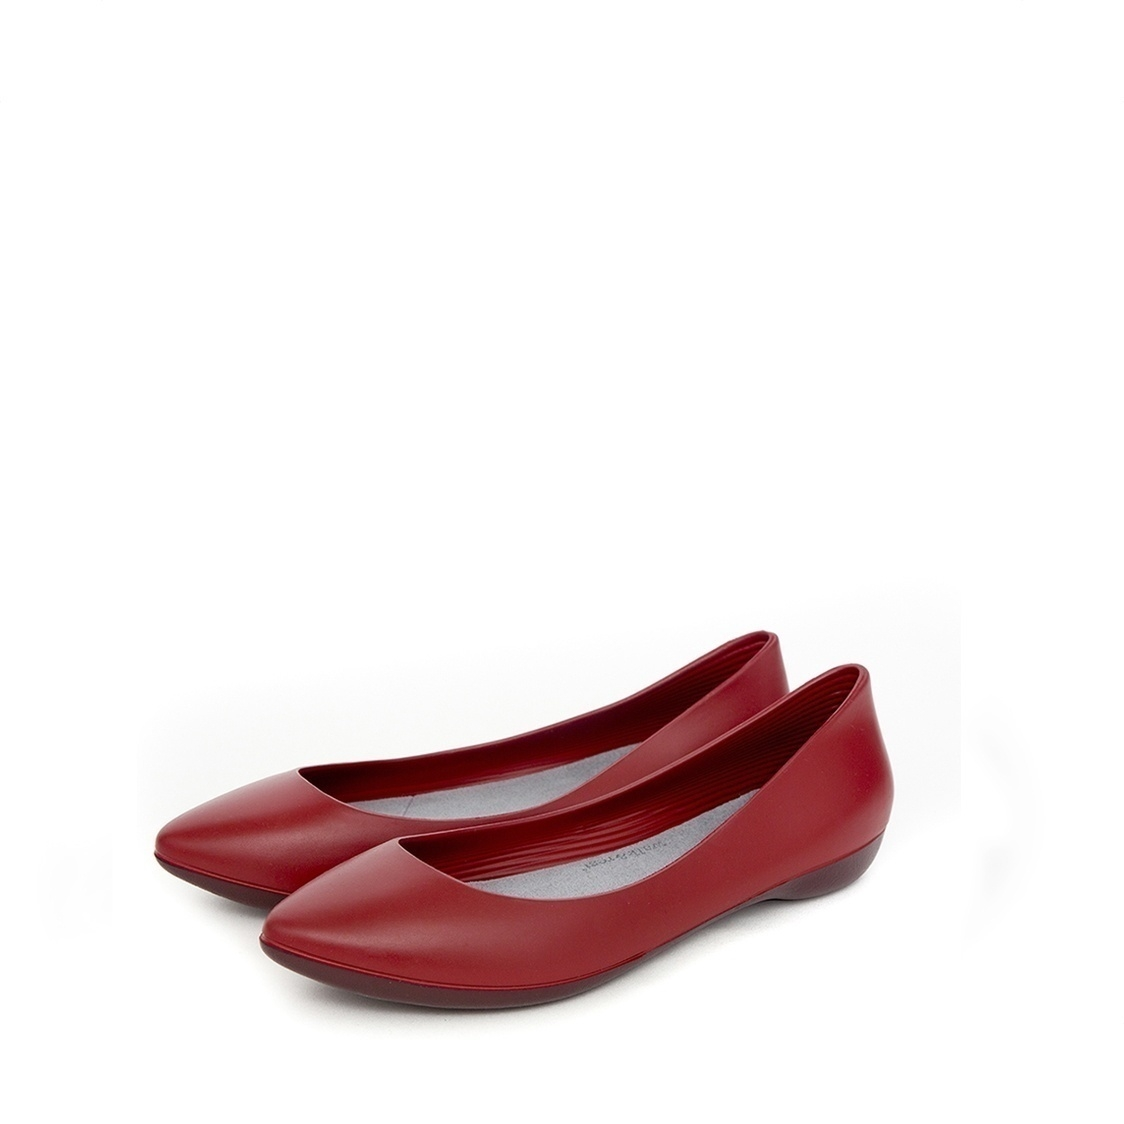 F2 Flat-Pointed Heel height 2cm Denim Red